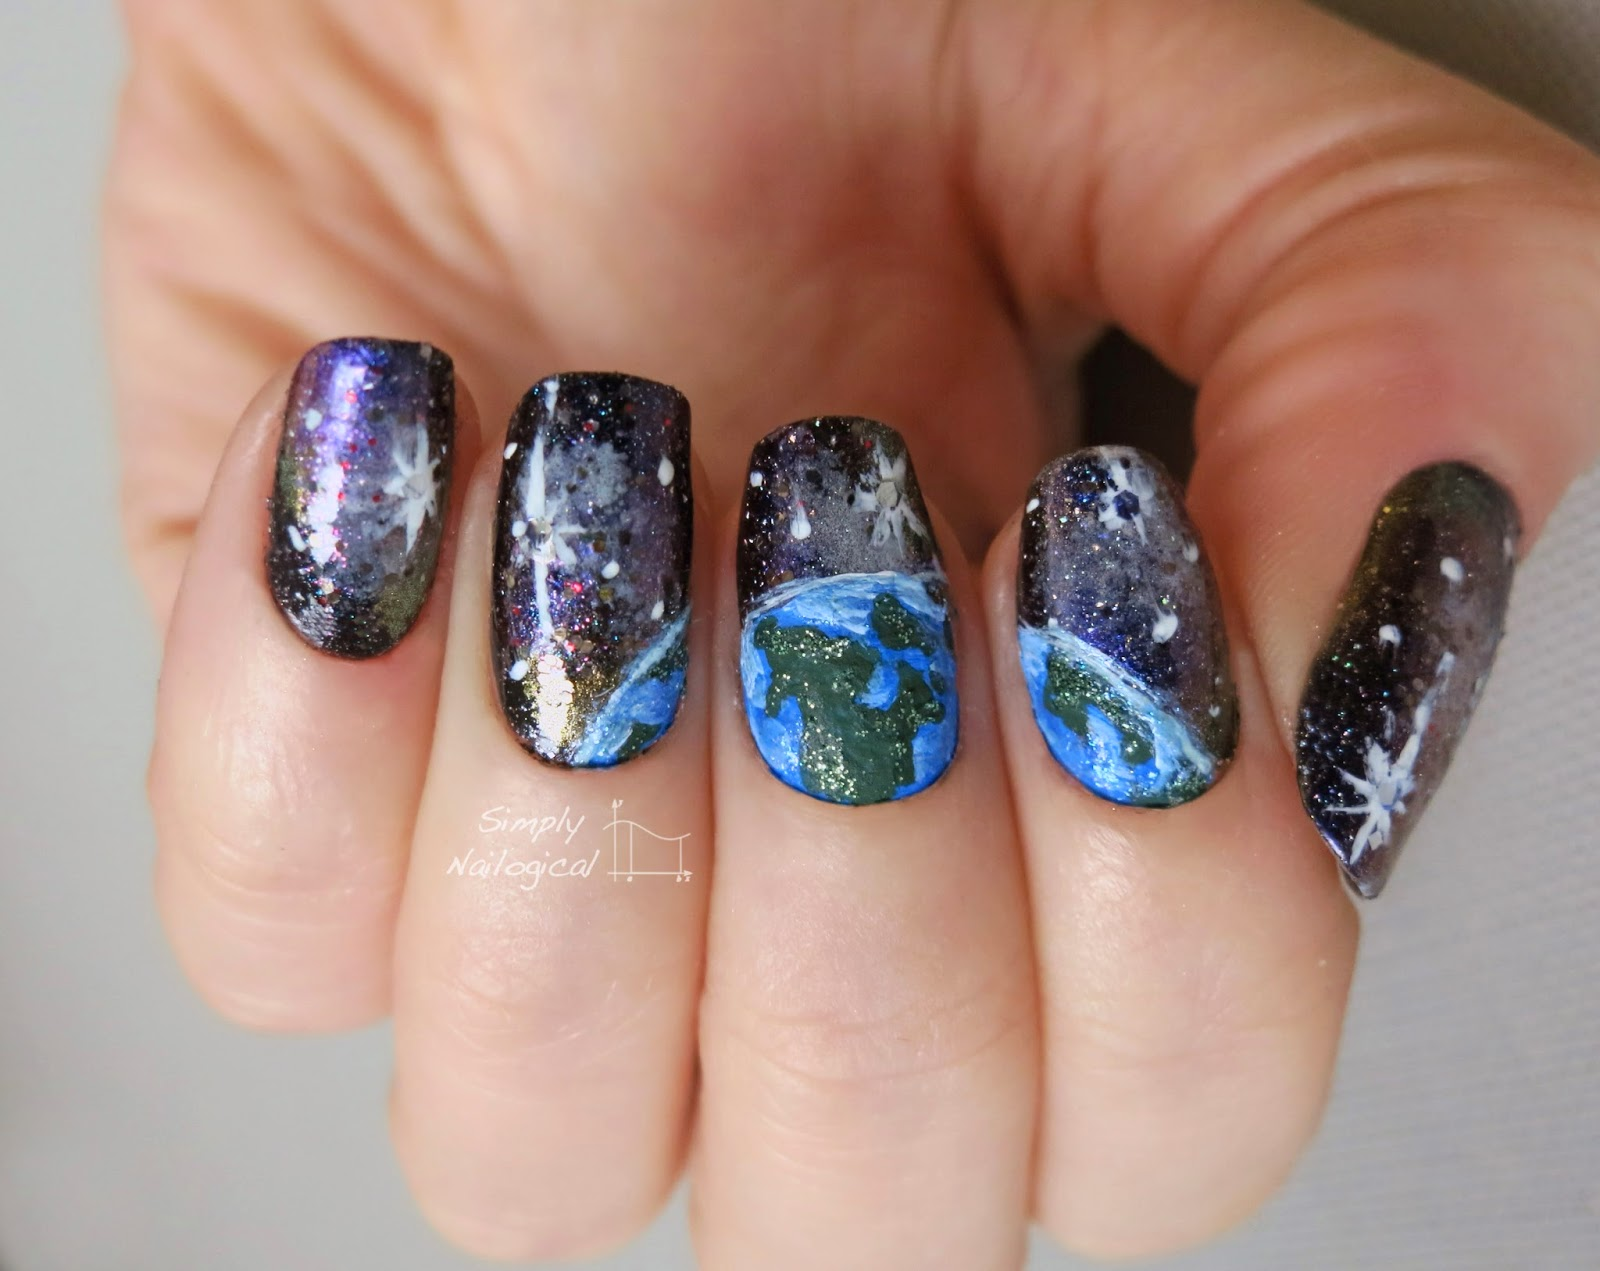 Simply Nailogical: Earth spotted in a galaxy